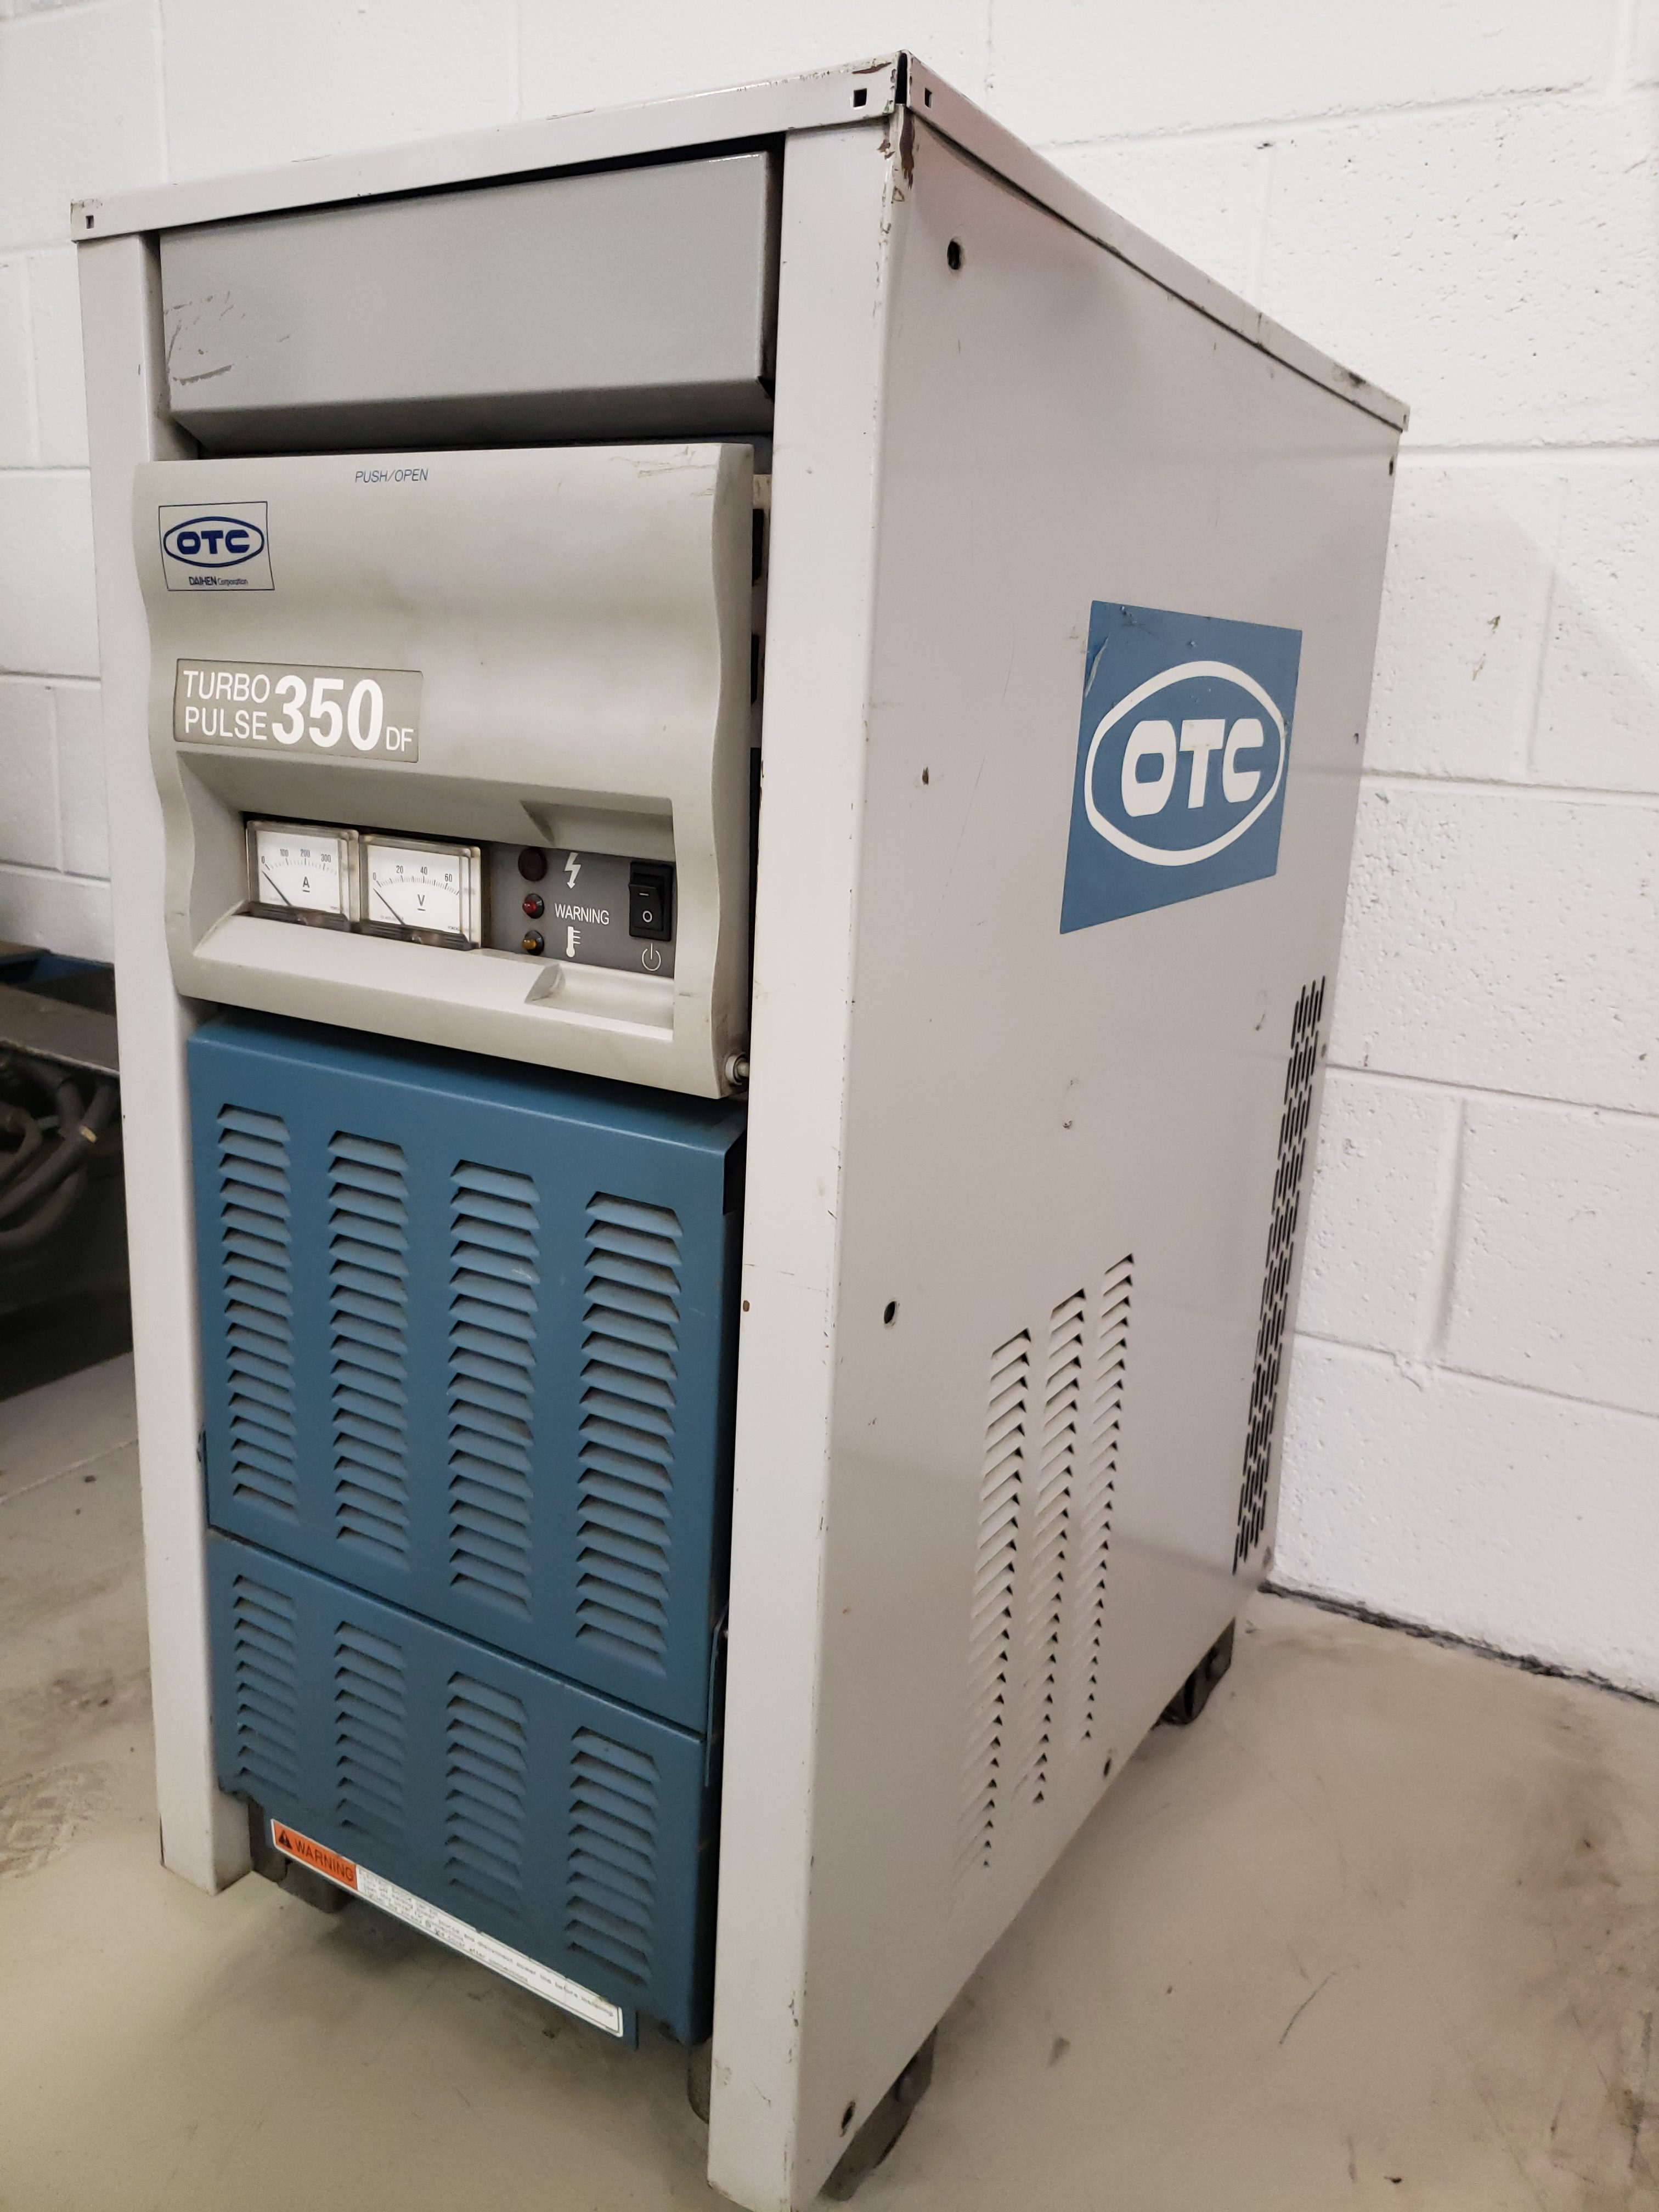 OTC DAIHEN TURBO PULSE 350 DF WELDING MACHINE Image